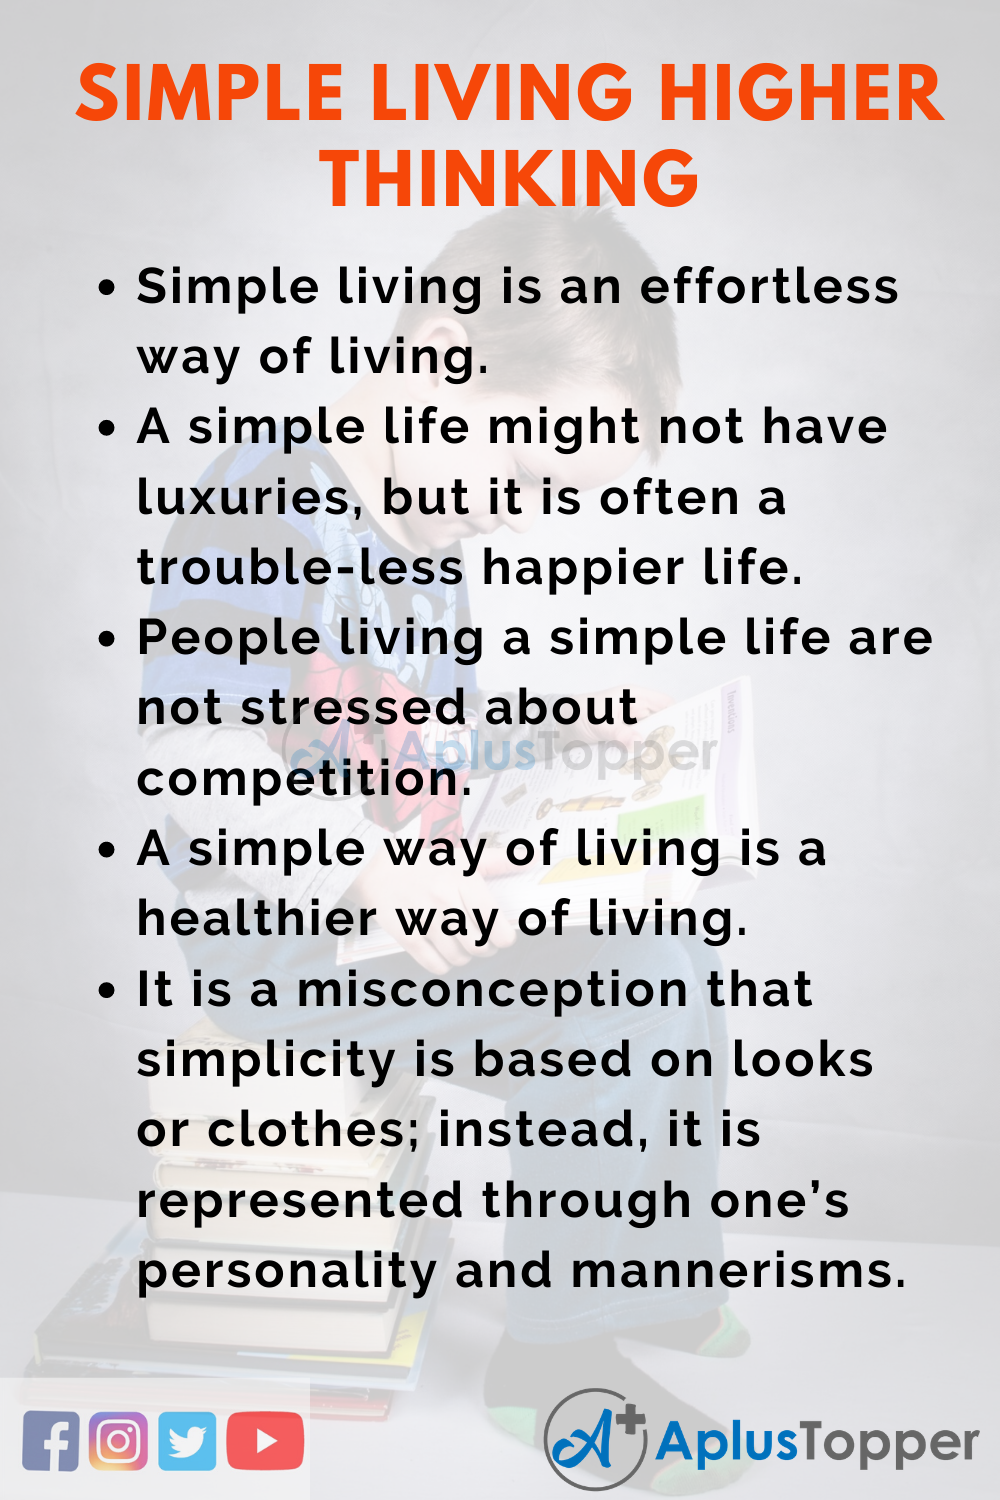 10 Lines On Simple Living Higher Thinking for Kids